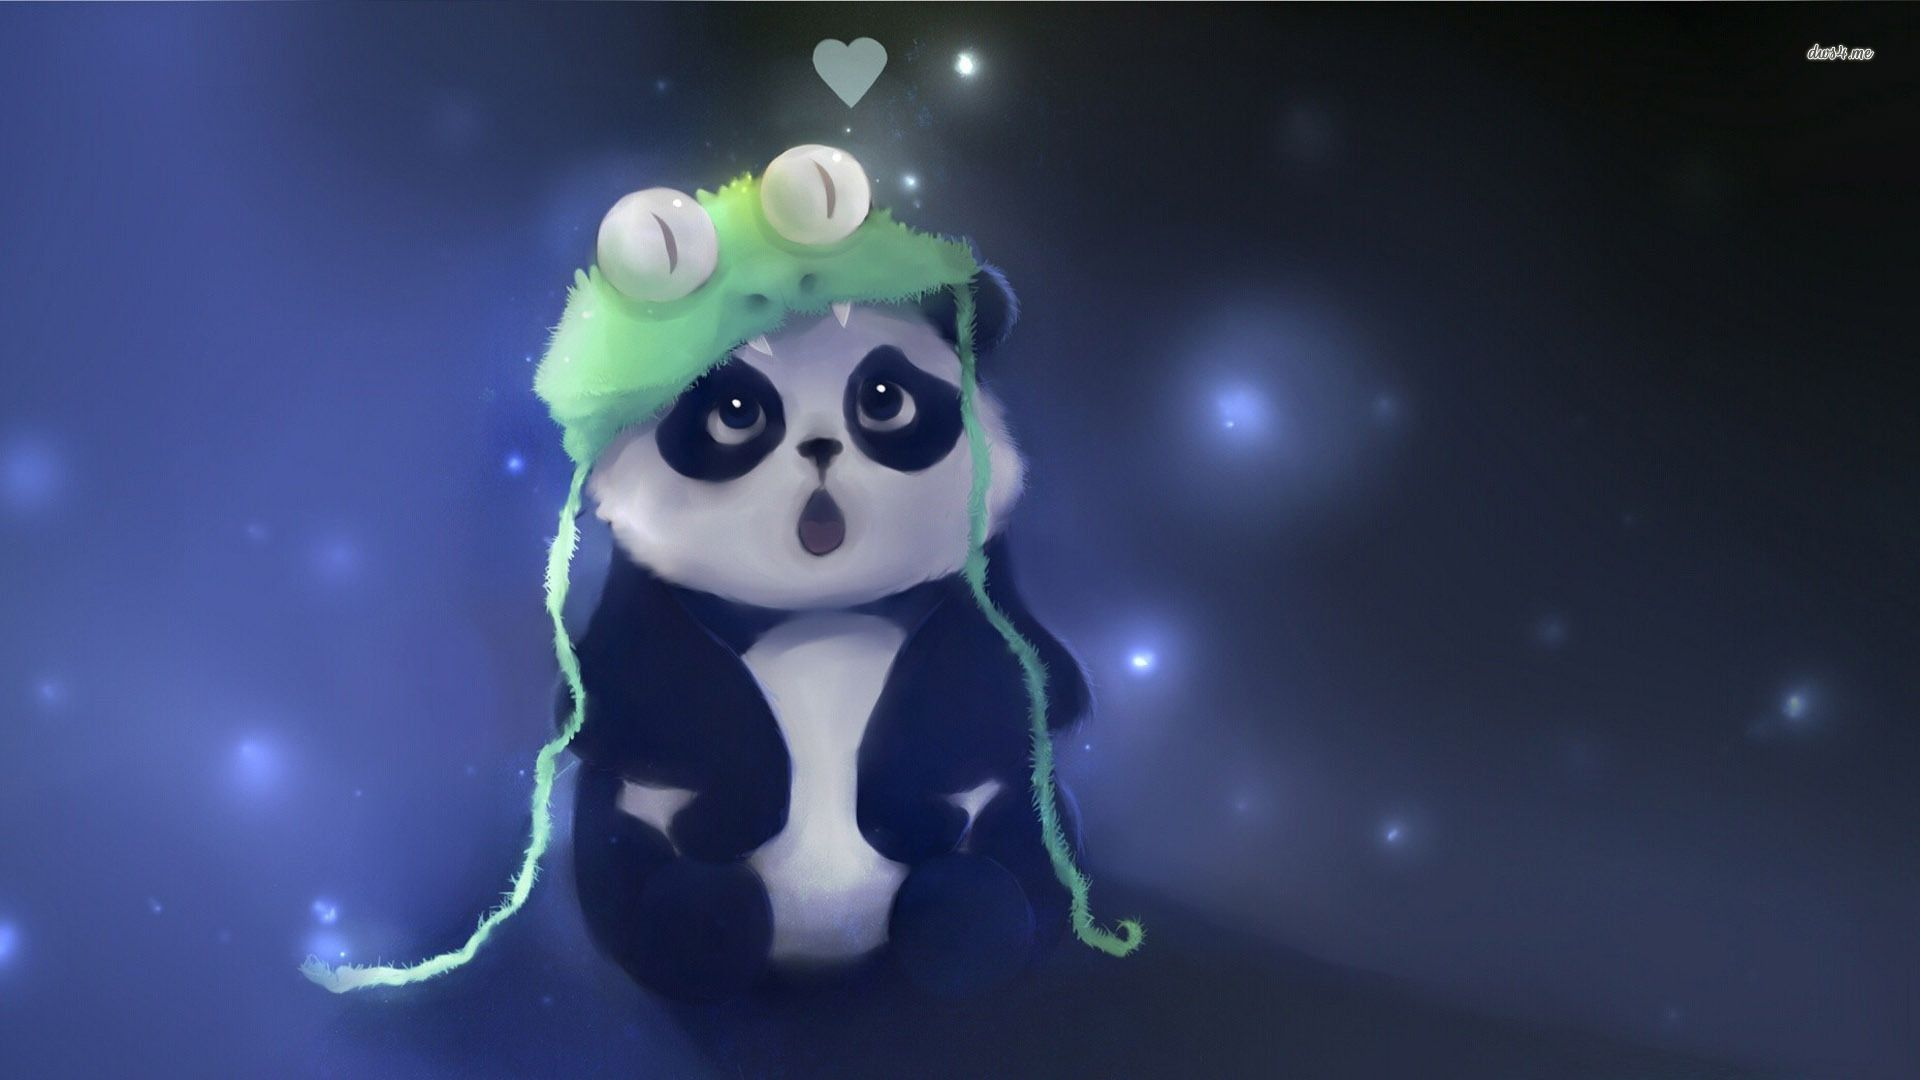 Cute Panda Backgrounds - Wallpaper Cave